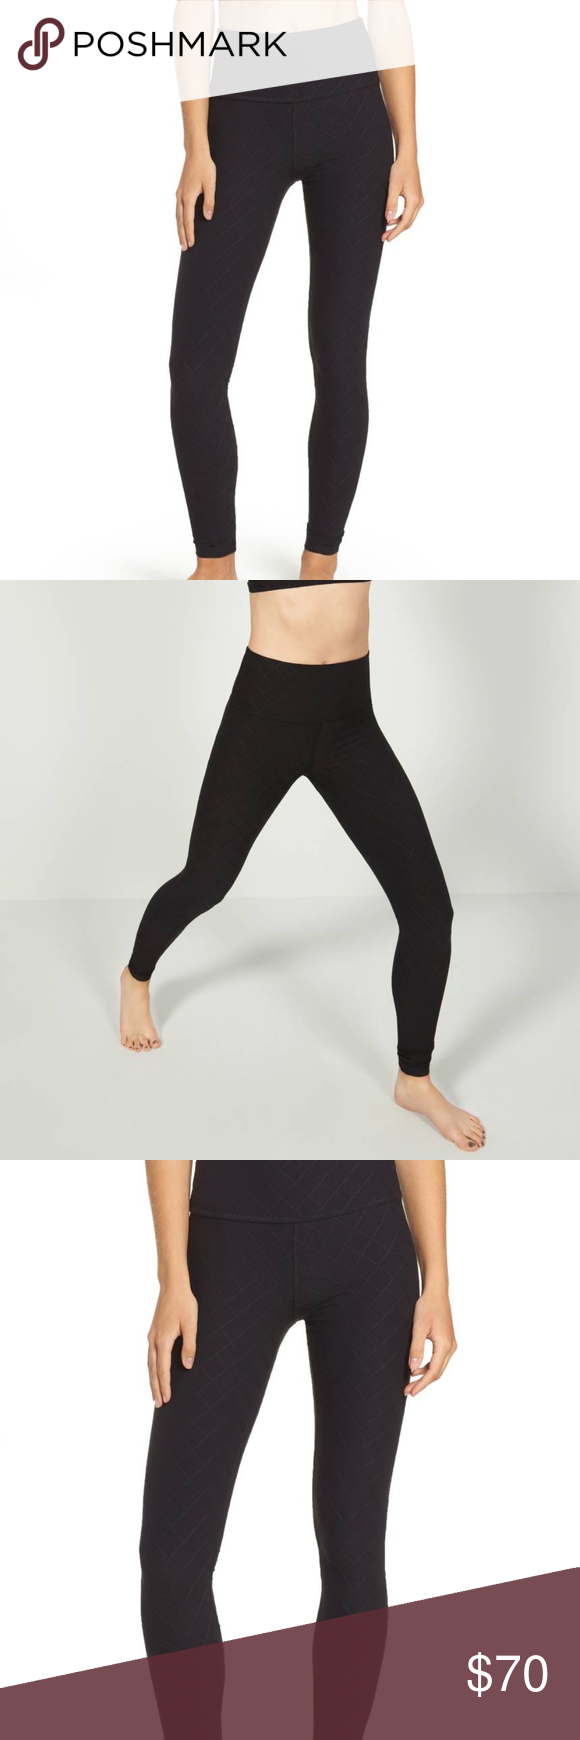 561050310451c8 BEYOND YOGA Can't Quilt You High Waisted Leggings Extra flattering and  extremely wearable,